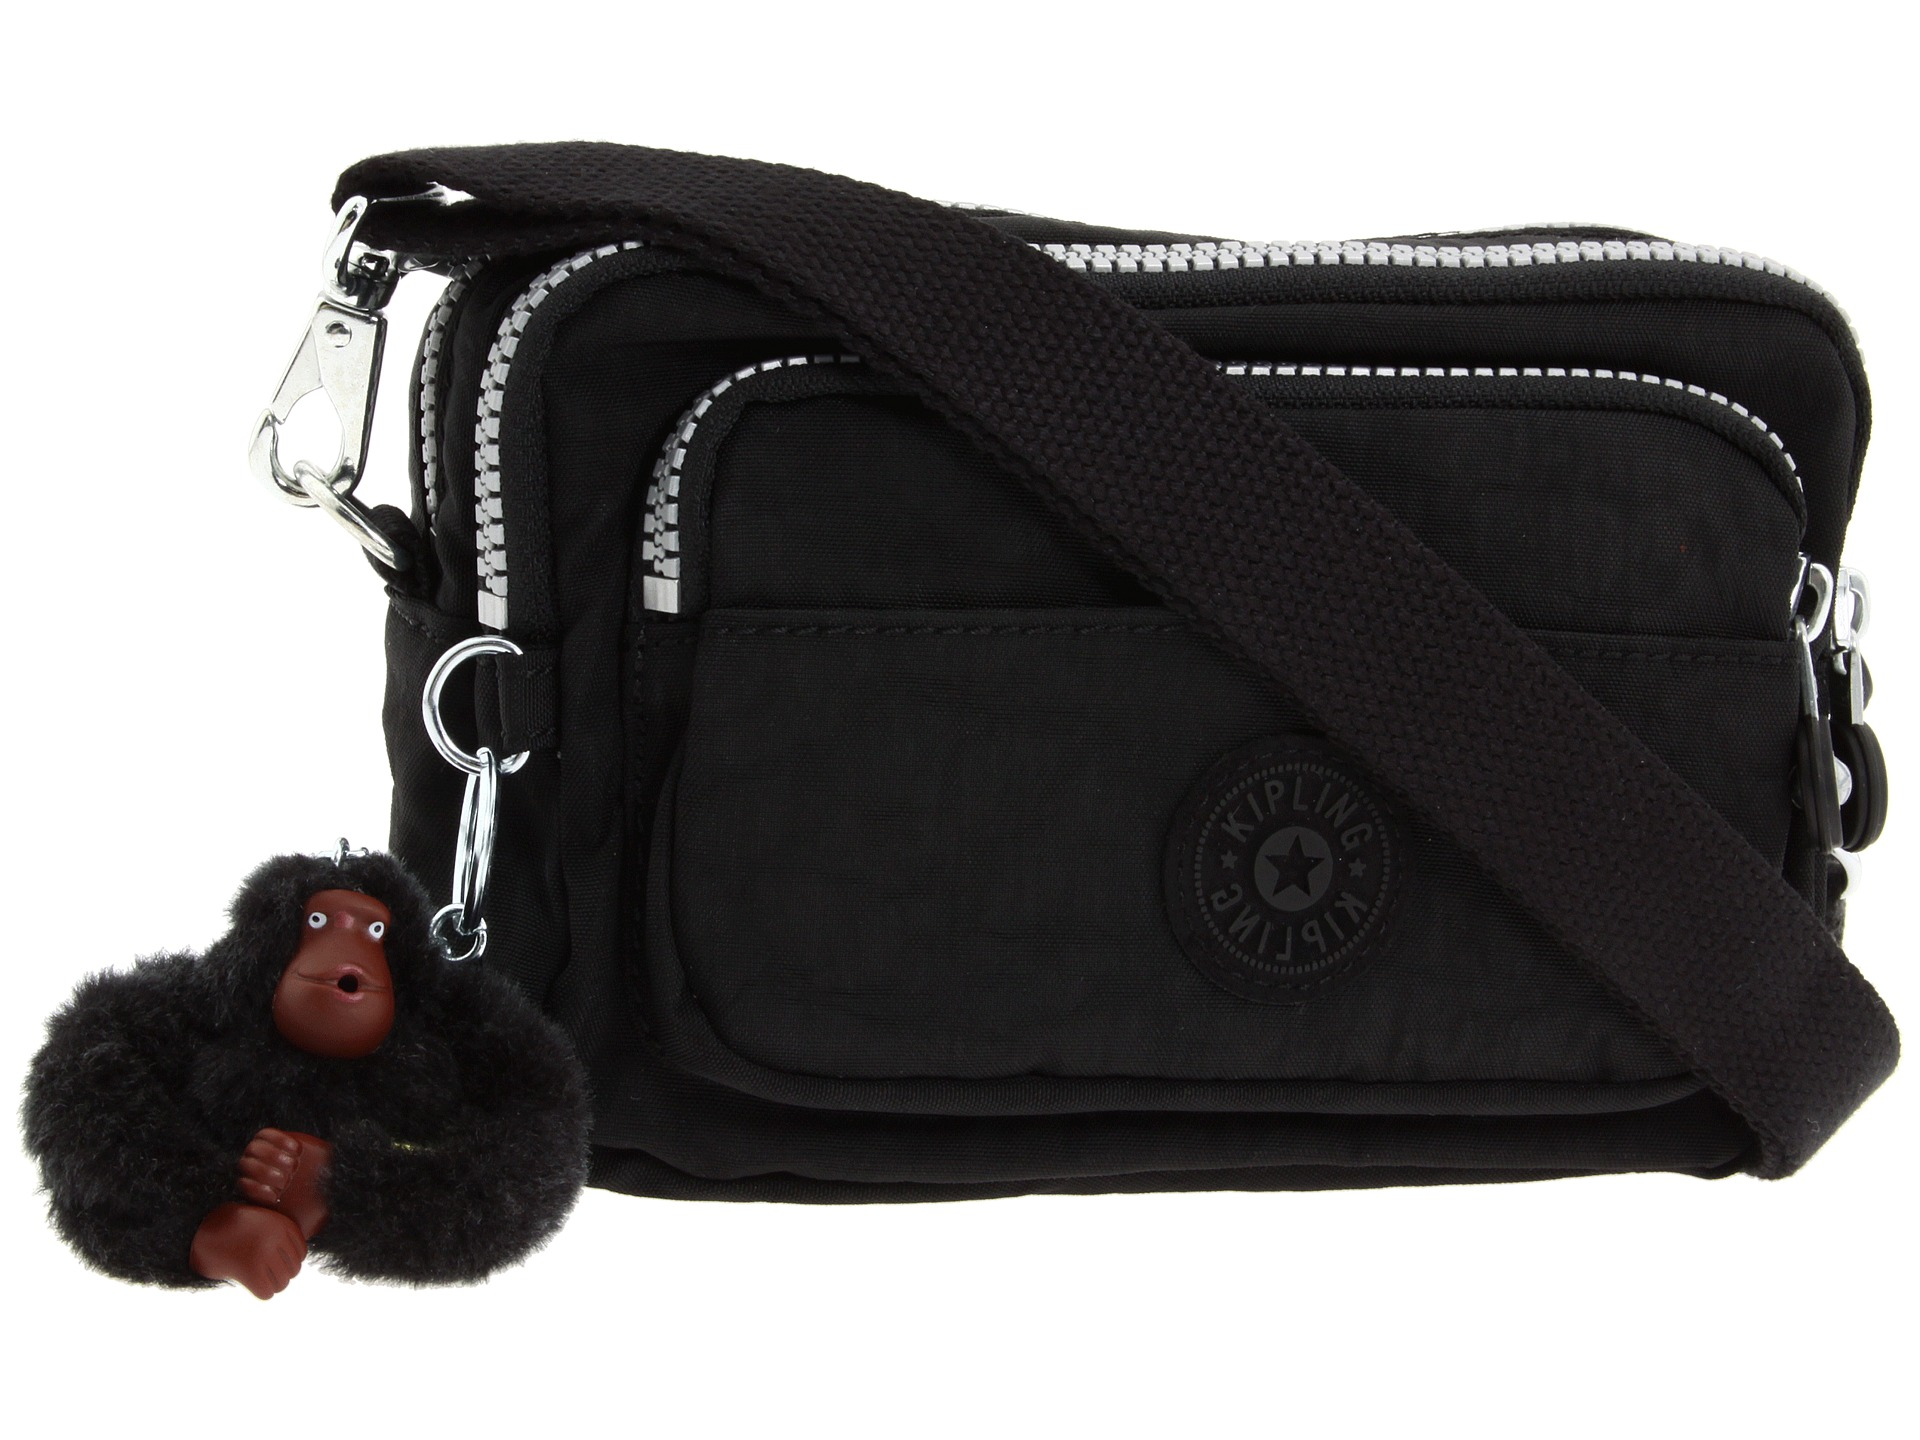 Kipling Multiple Belt Bag Shoulder Bag 7